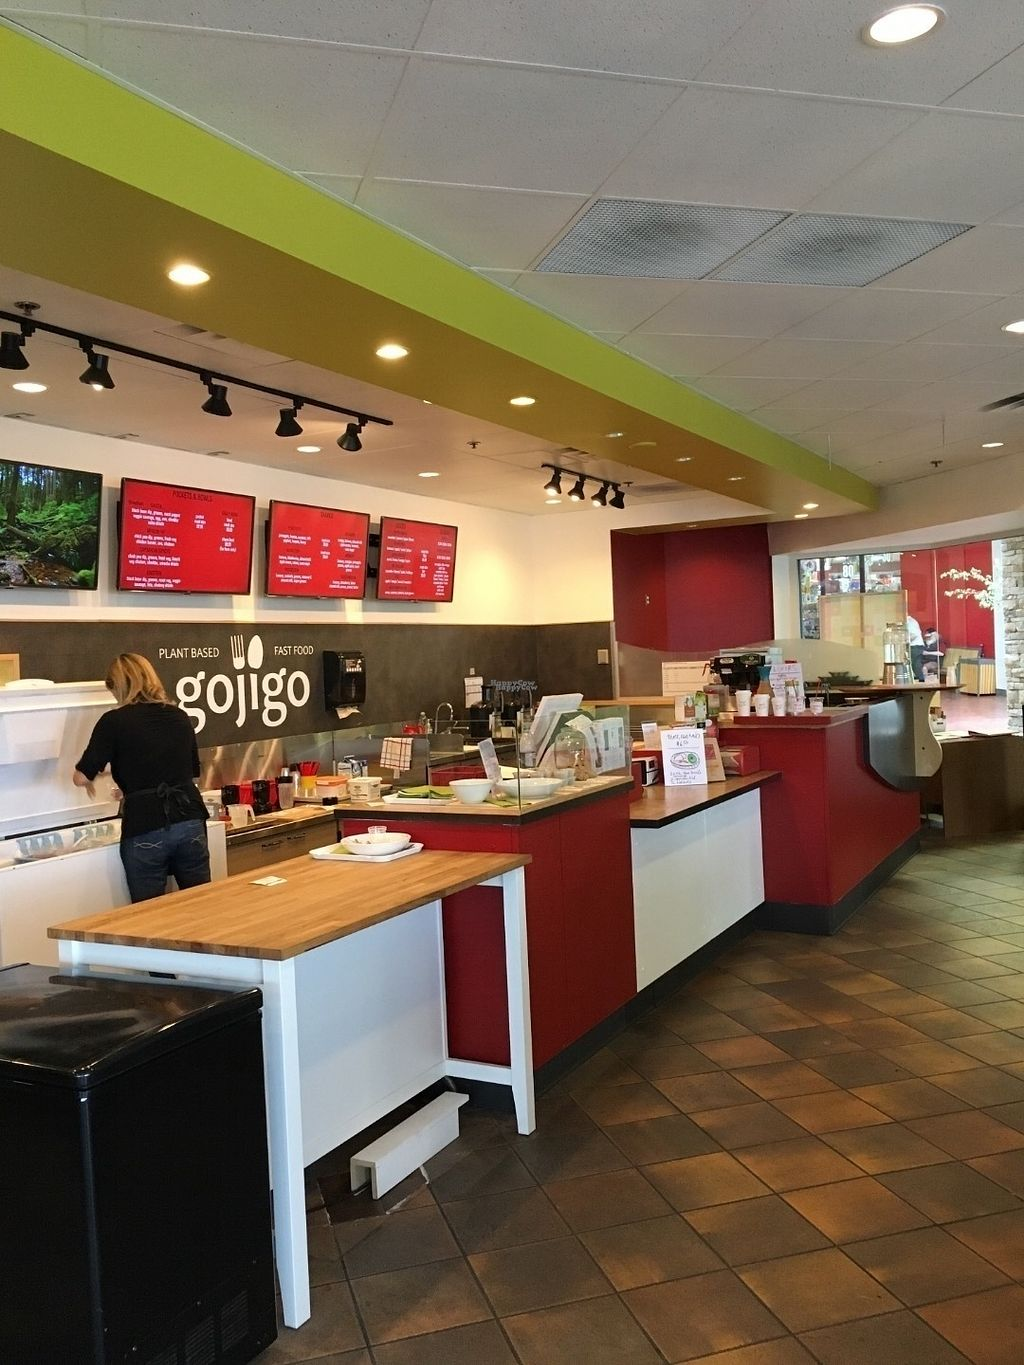 """Photo of CLOSED: Gojigo  by <a href=""""/members/profile/vegan%20frog"""">vegan frog</a> <br/>Counter <br/> October 22, 2016  - <a href='/contact/abuse/image/77074/183522'>Report</a>"""